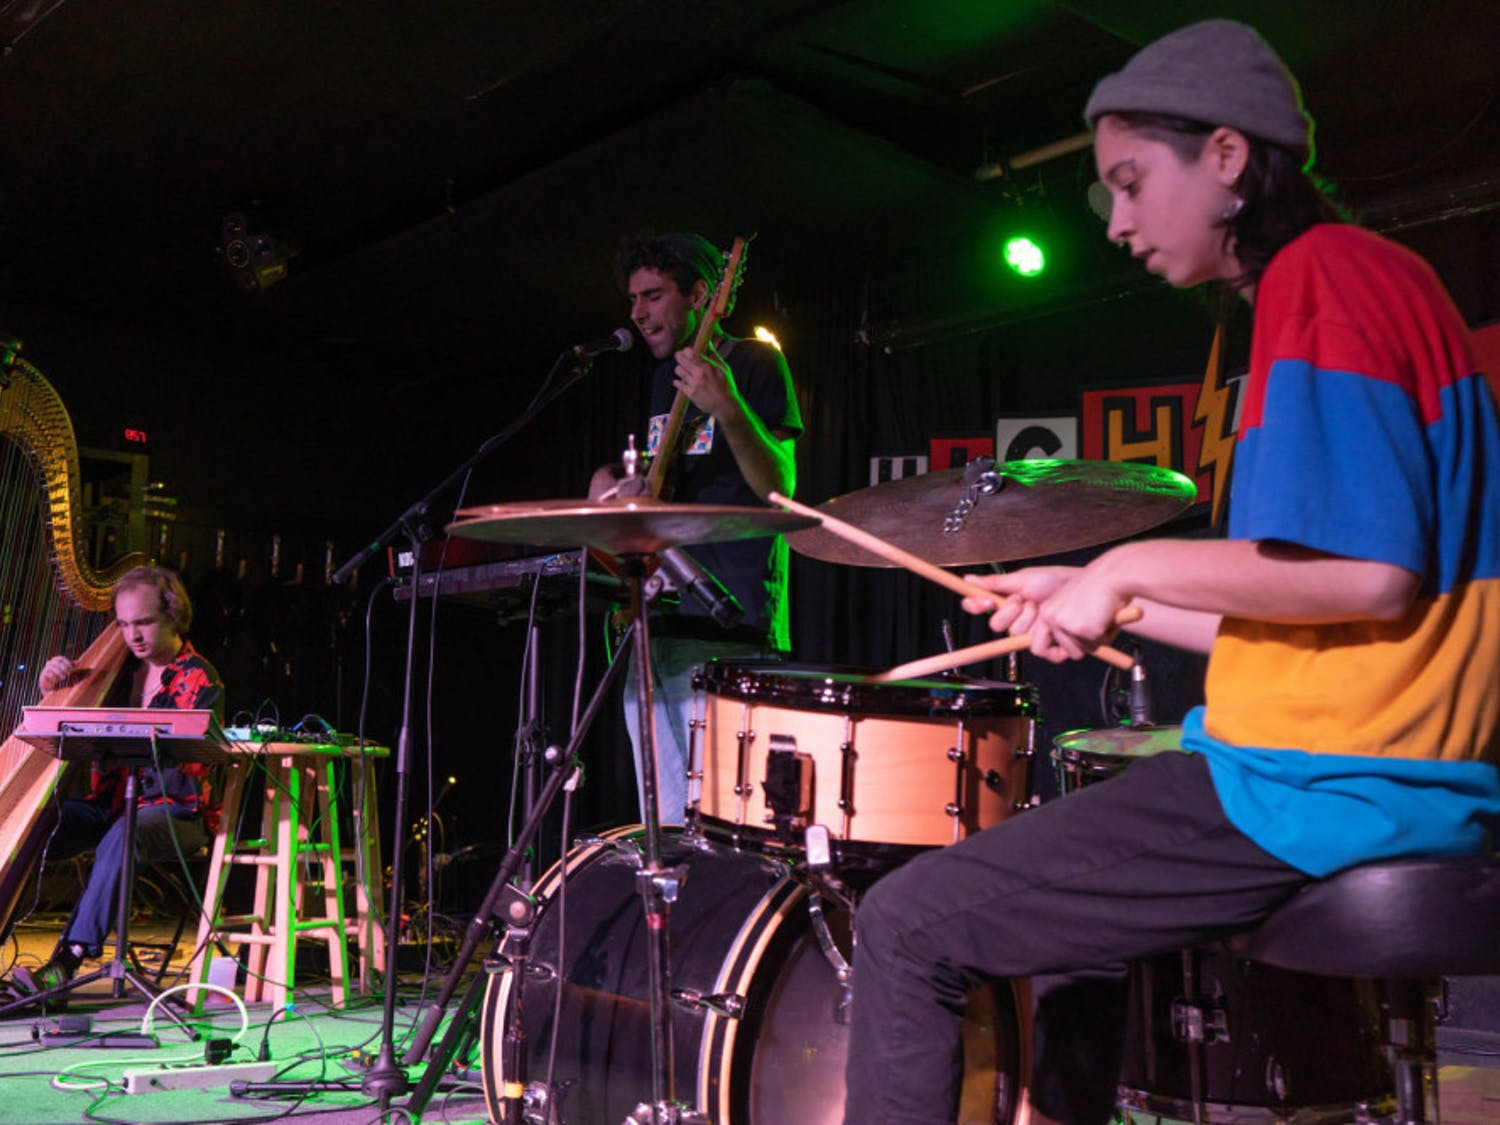 Tanuki Garden Club plays Sunday night at The High Dive as part of the Hearoes for Hearing concert to benefit the hearing impaired.